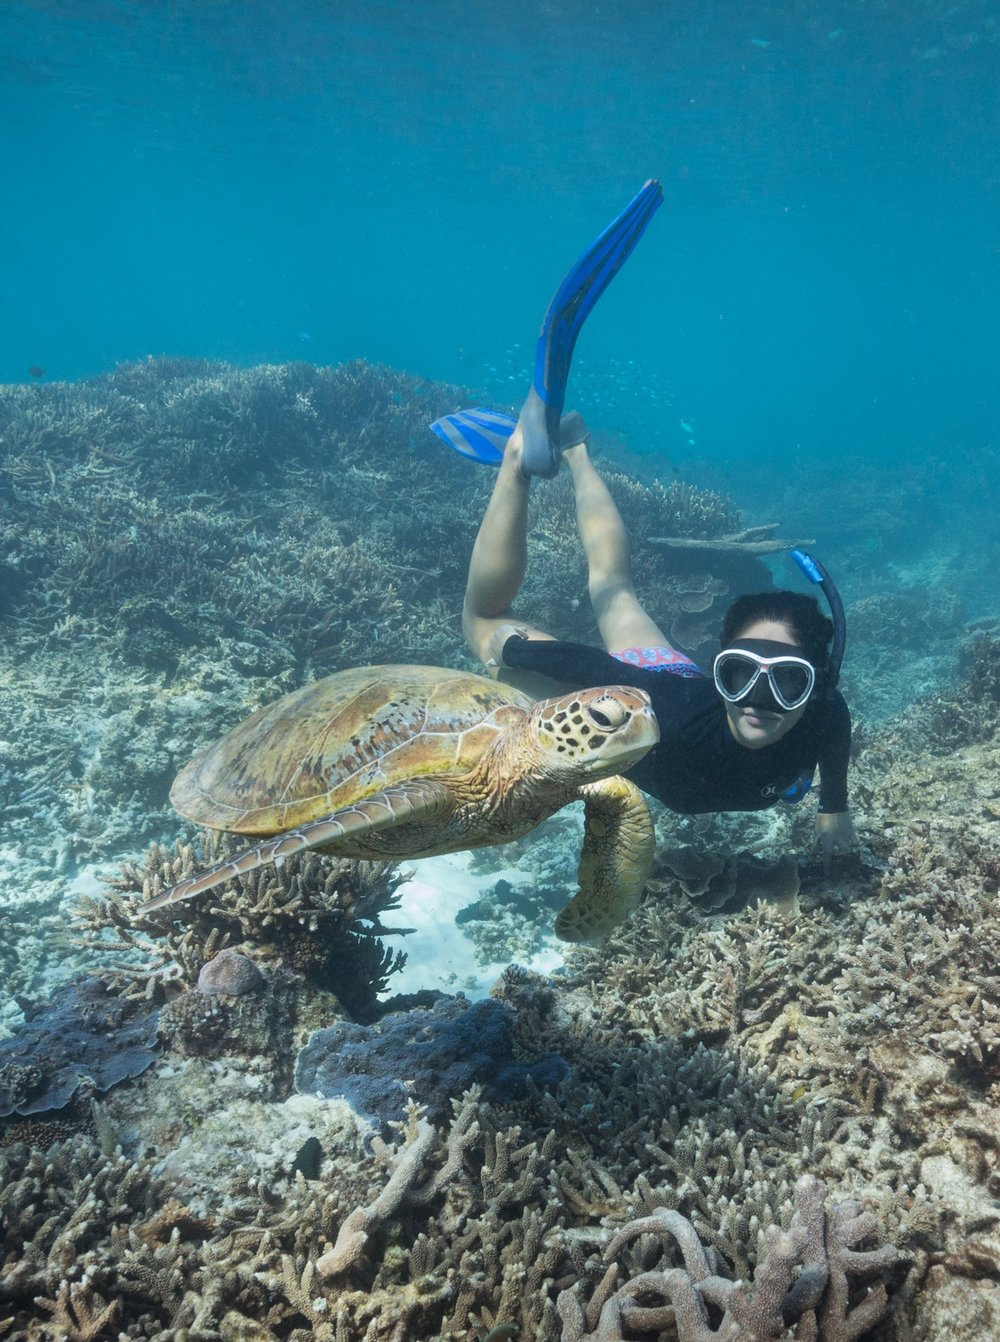 Co-Director+Danielle+Ryan+-+Turtle+on+Great+Barrier+Reef+%C2%A9%C2%A0James+Sherwood%2C+Bluebottle+Films%3AThe+Map+to+Paradise.jpg